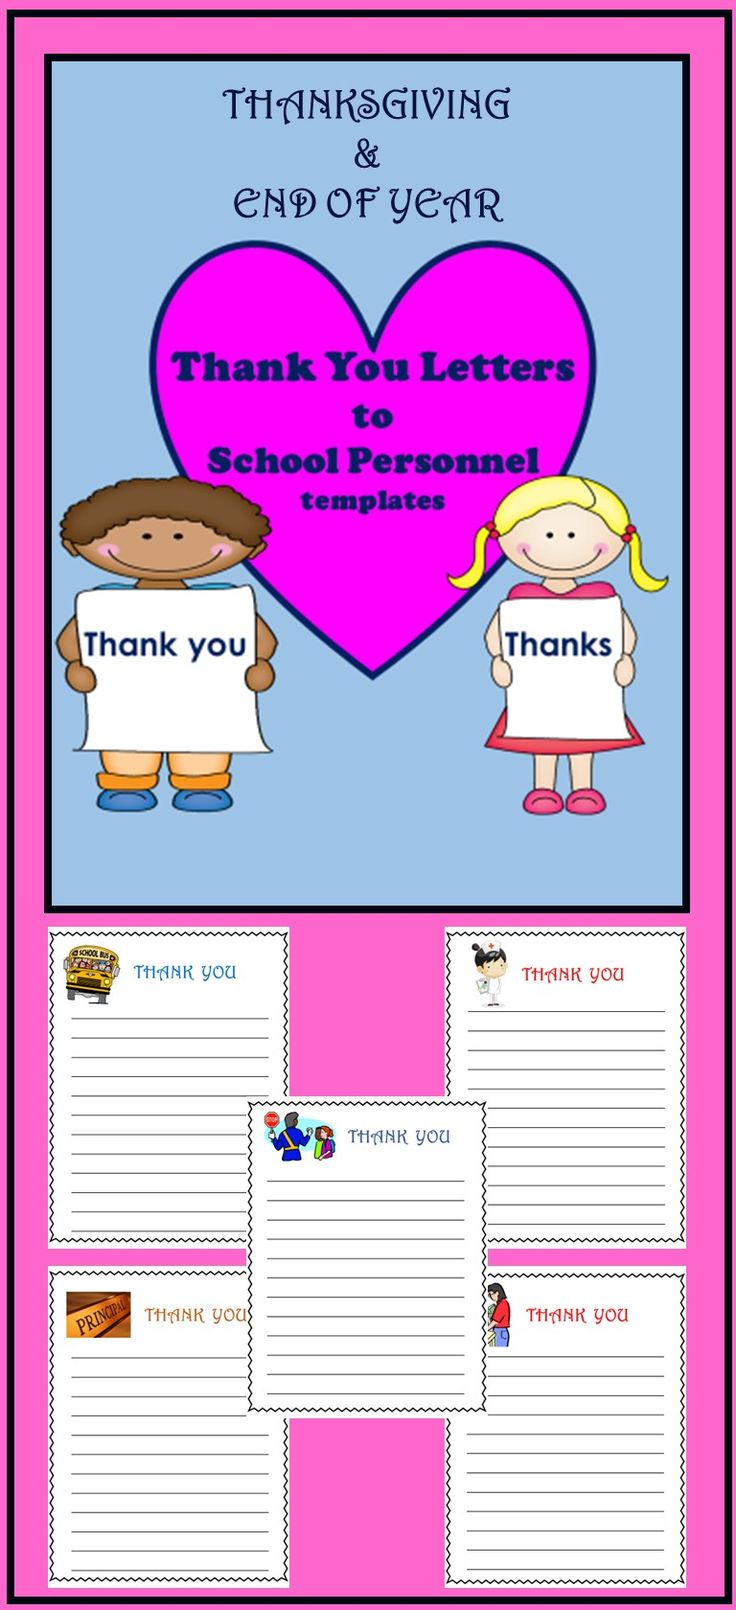 22 best writing images on pinterest school english language and friendly letter writing thank you letters to school staff spiritdancerdesigns Gallery